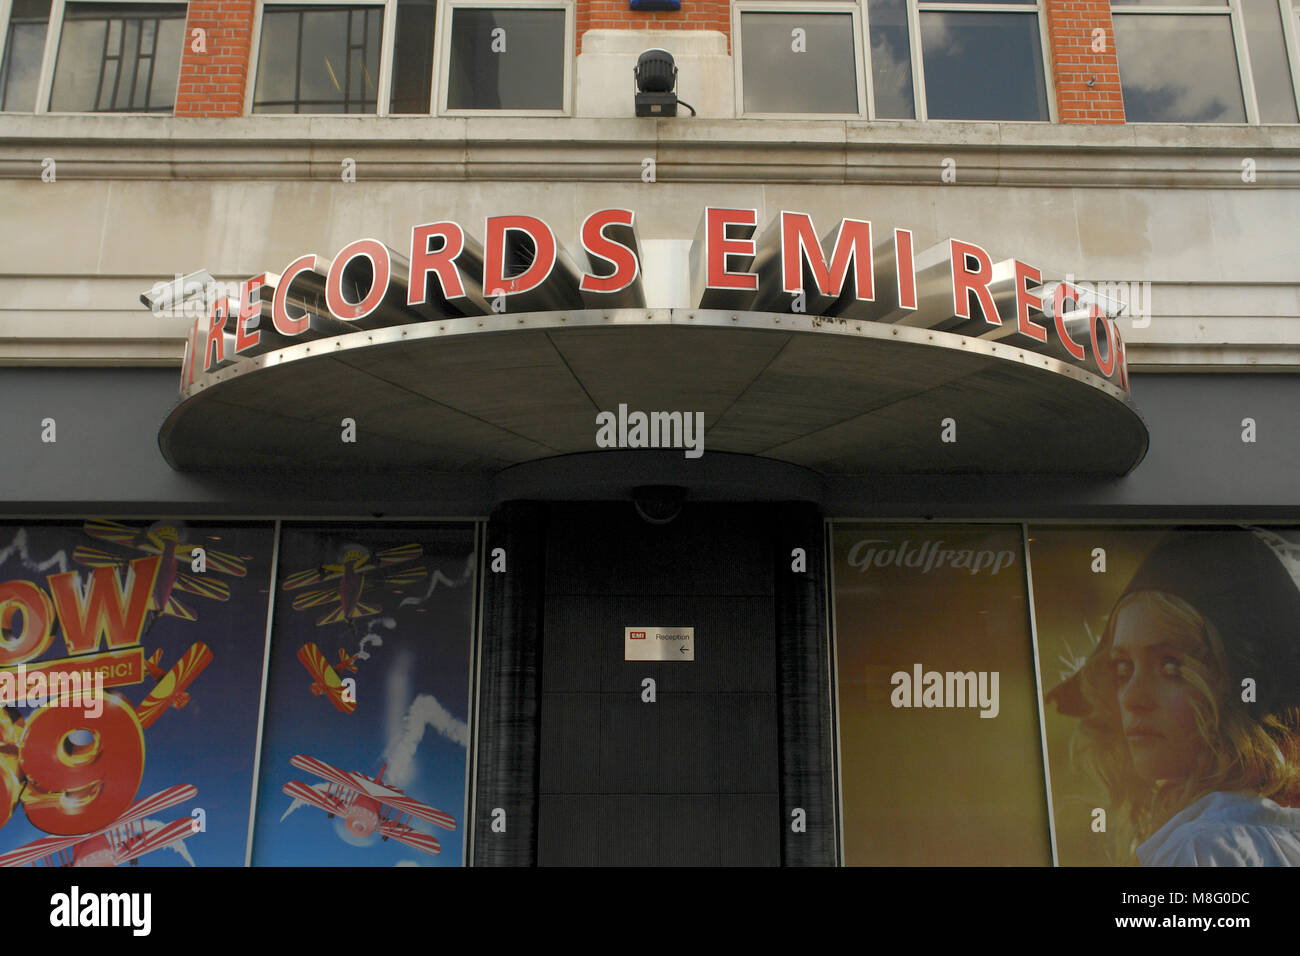 16/04/2008. EMI Records head office, Brook Green, London. Front door and logo. - Stock Image